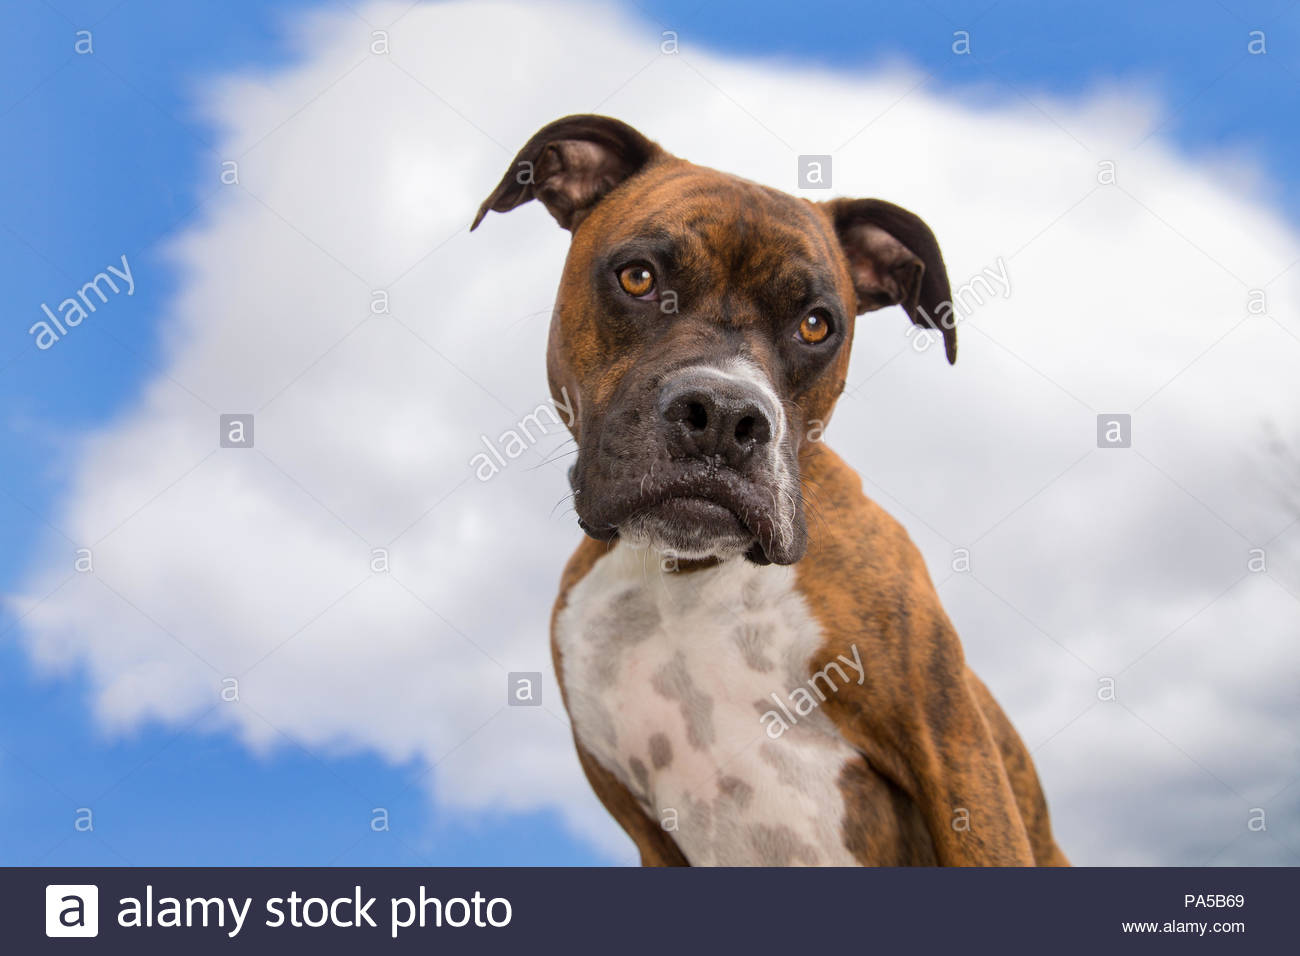 Brown brindle and white boxer close-up with funny expression and blue sky and white clouds behind him - Stock Image